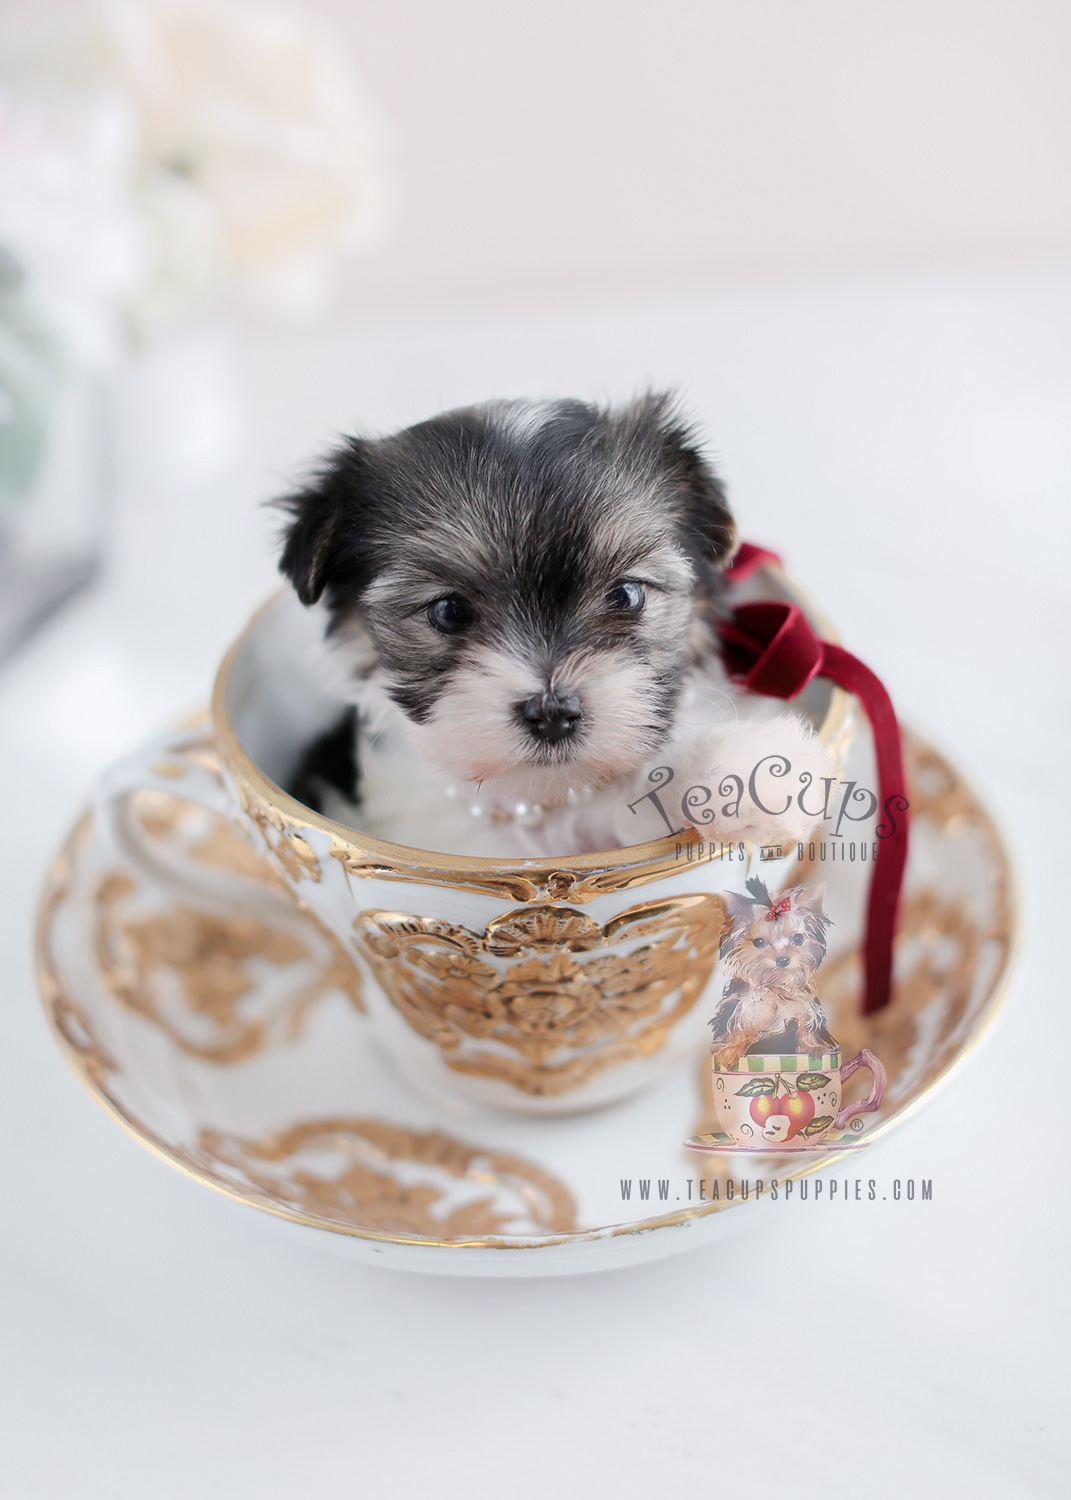 Biewer Terrier Puppies For